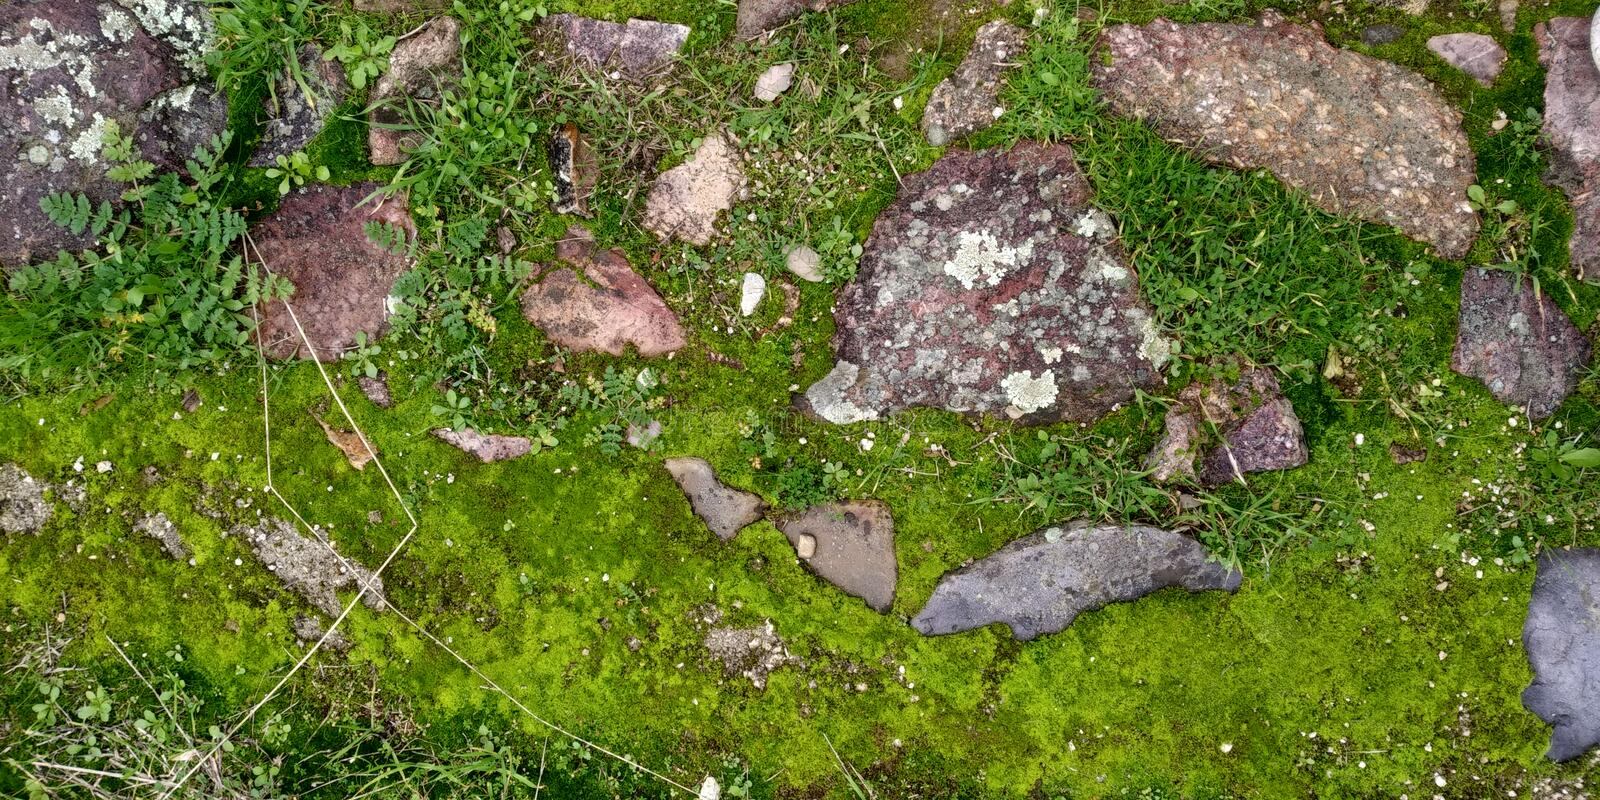 Real Green Moss Seamless Texture. Real Moss Texture with Stone on the Rock Musgo Verde royalty free stock photography